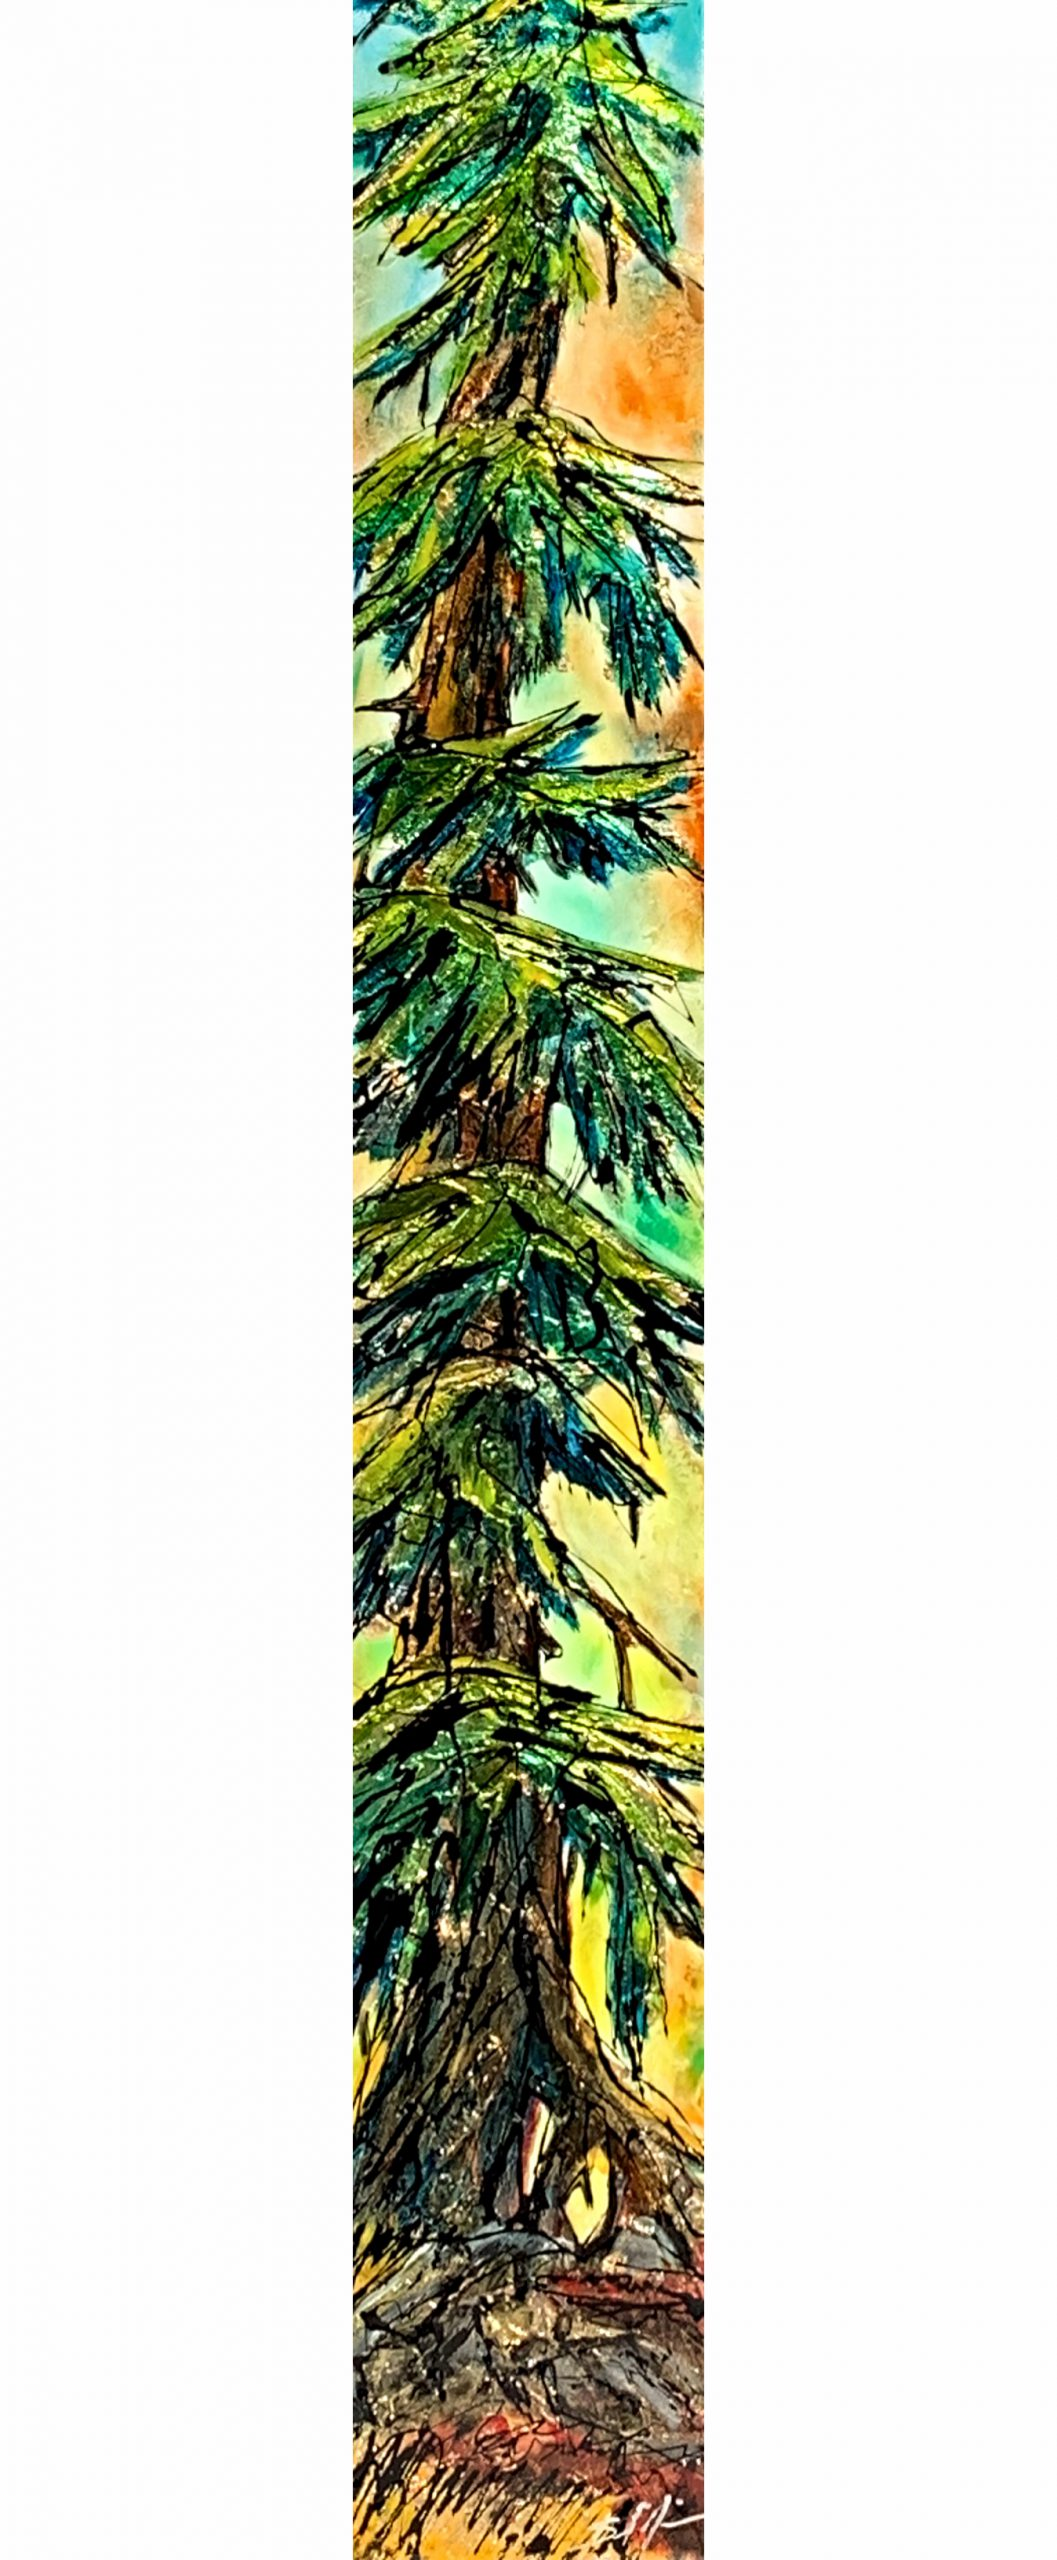 It is, mixed media tree painting by David Zimmerman | Effusion Art Gallery + Cast Glass Studio, Invermere BC